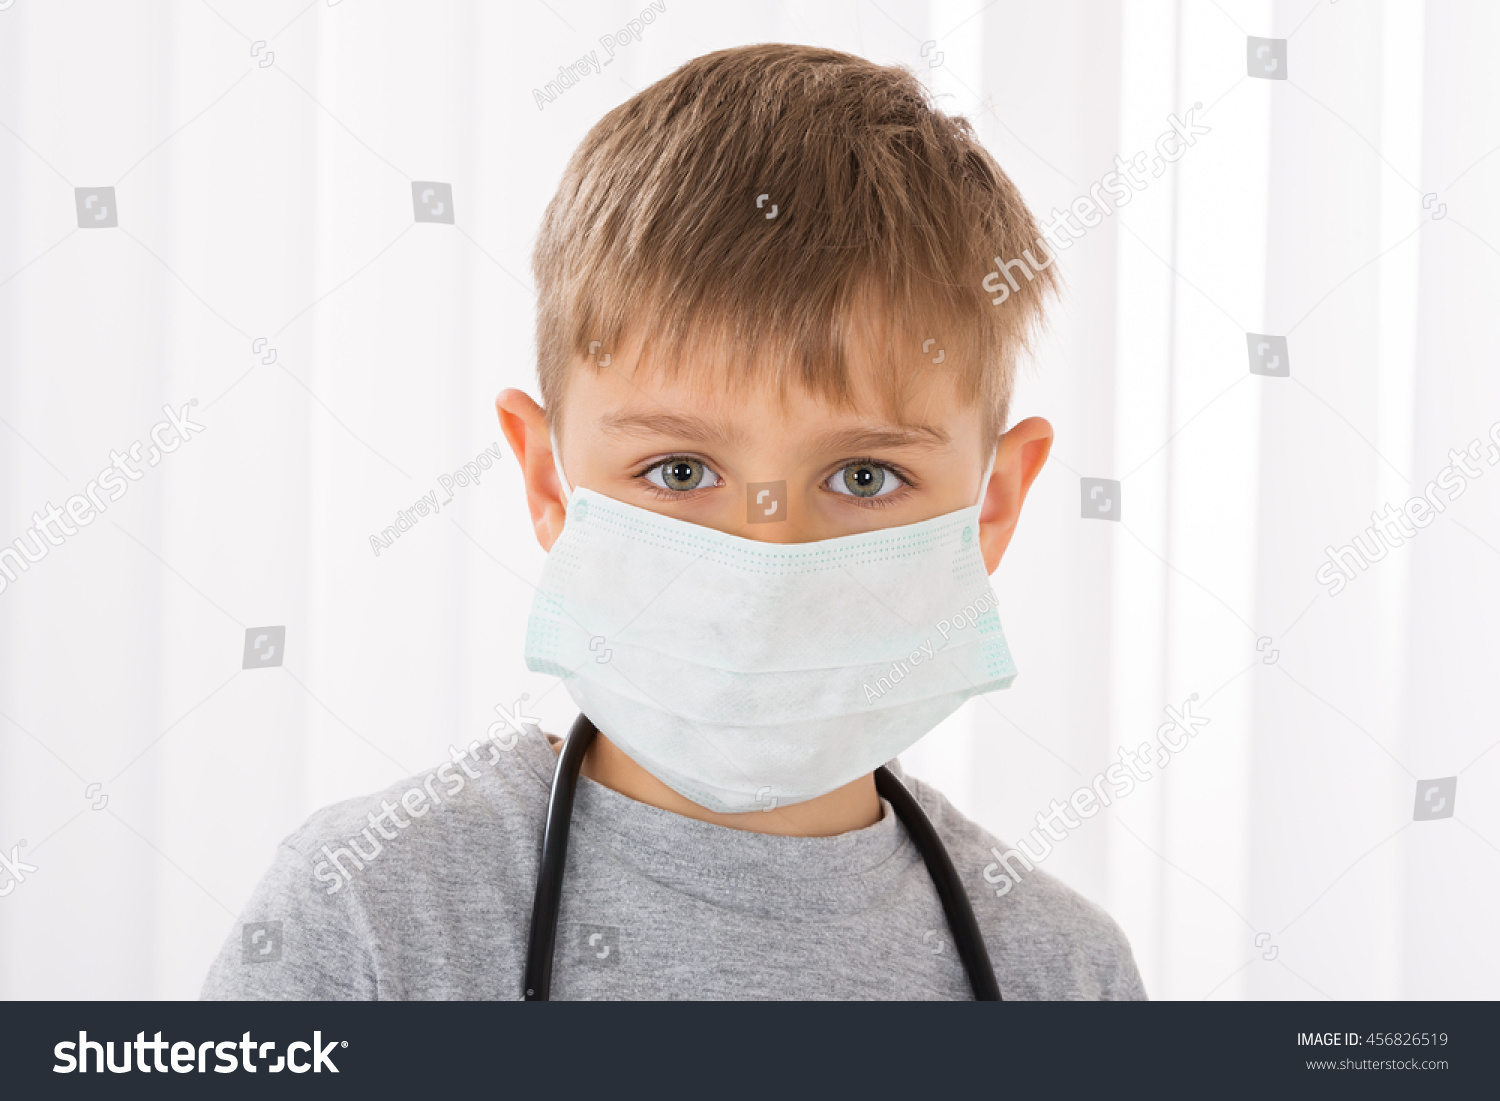 Now Photo 456826519 Portrait Boy Mask Stock edit Doctor Surgical